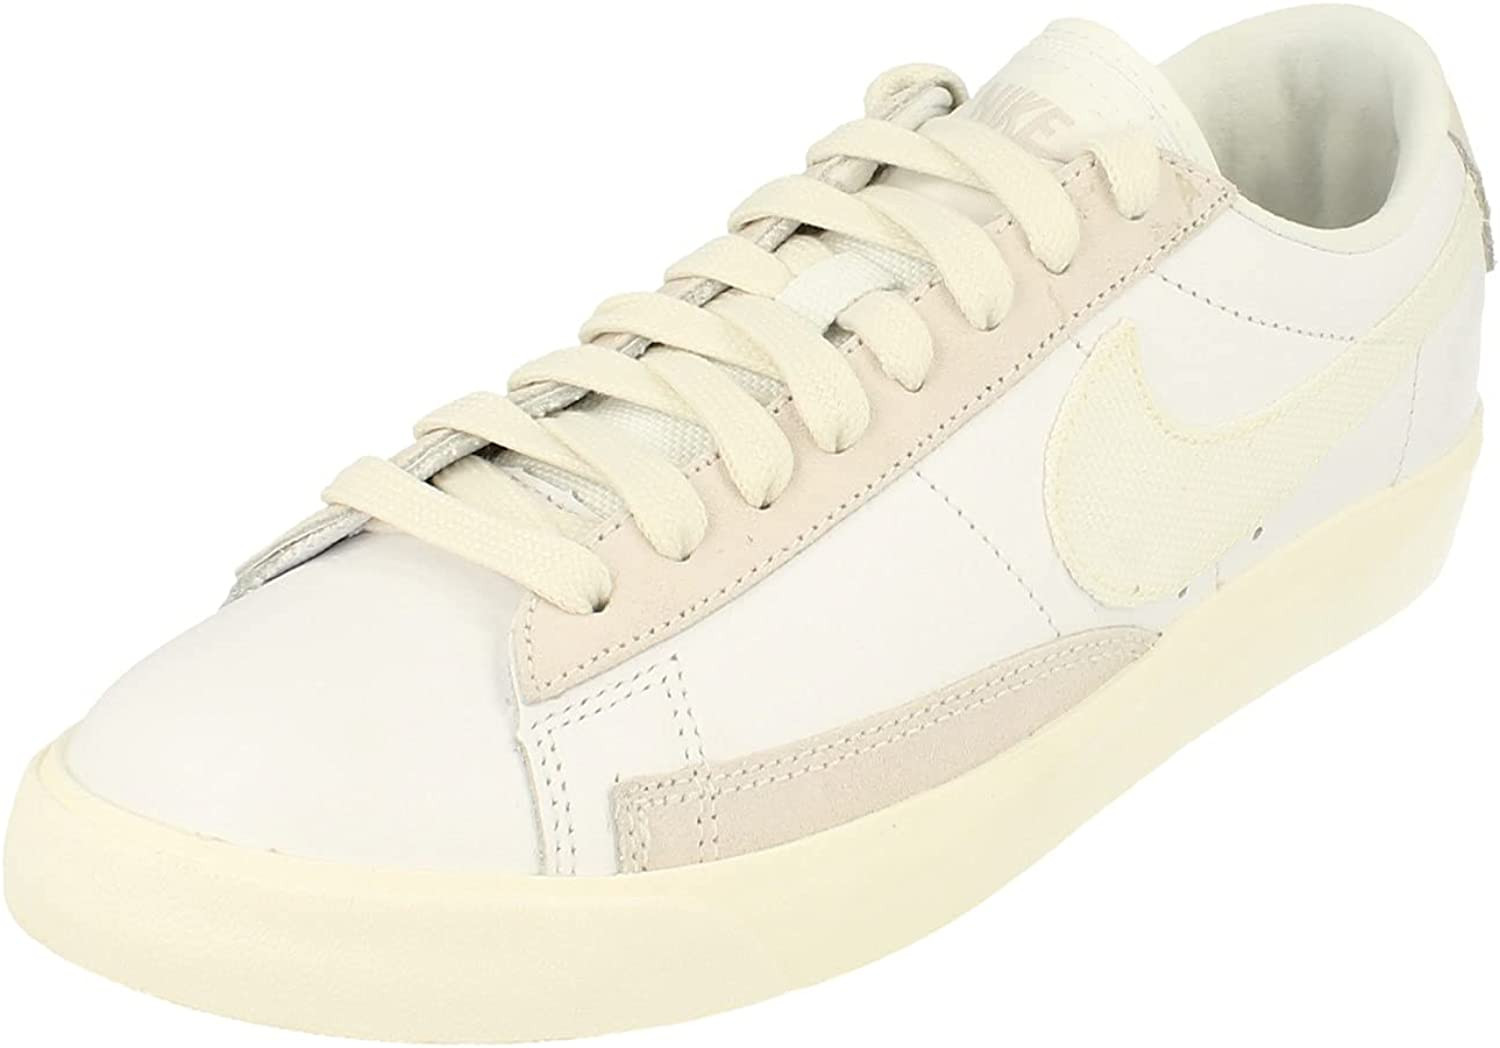 Long-awaited Nike Blazer Low Leather Mens Trainers Cw7585 Shoes Sneakers Cash special price